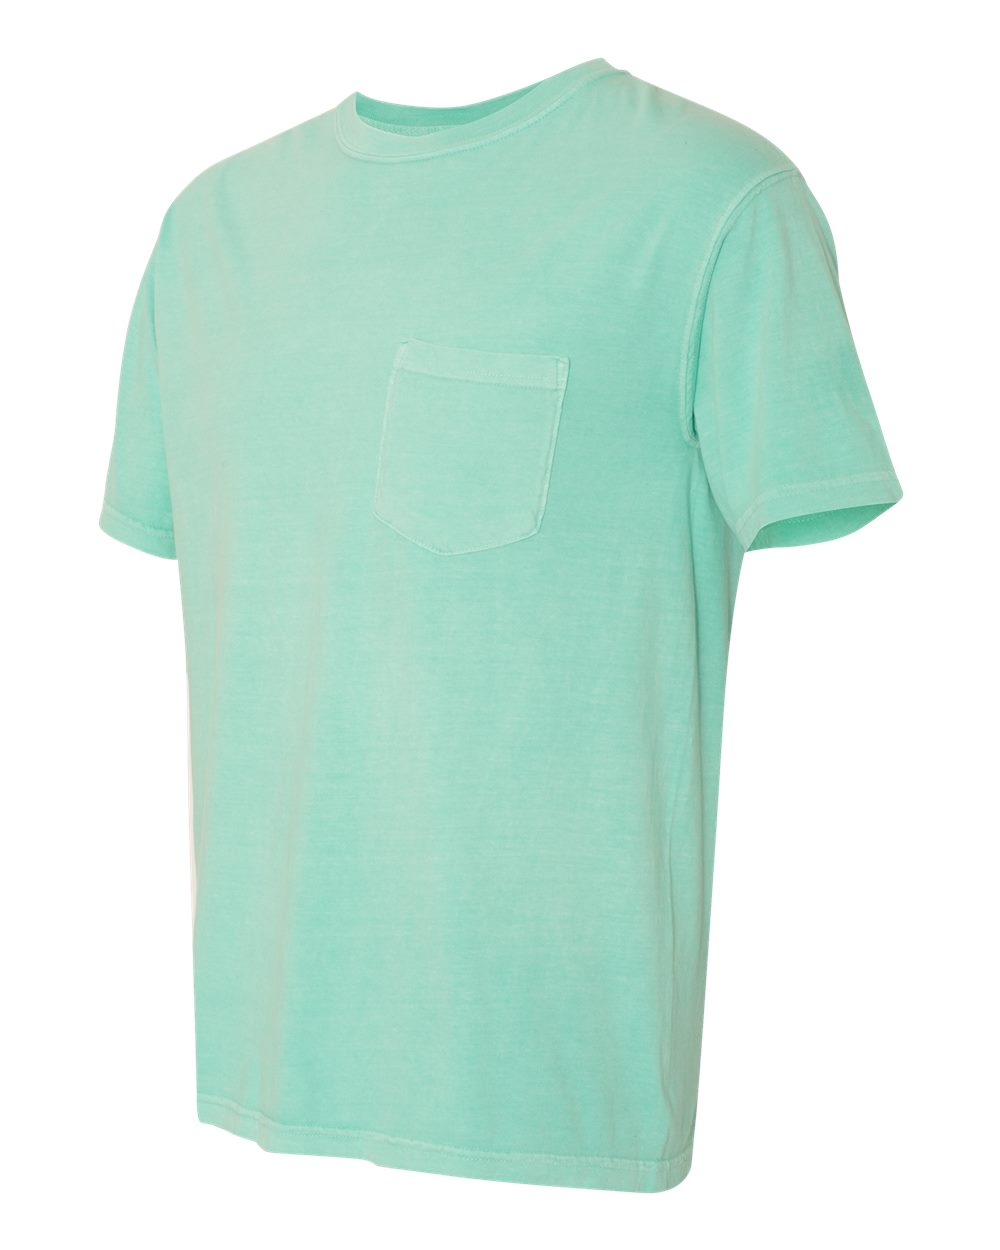 Comfort-Colors-Men-039-s-6-1-oz-Garment-Dyed-Pocket-T-Shirt-6030CC-S-3XL thumbnail 107